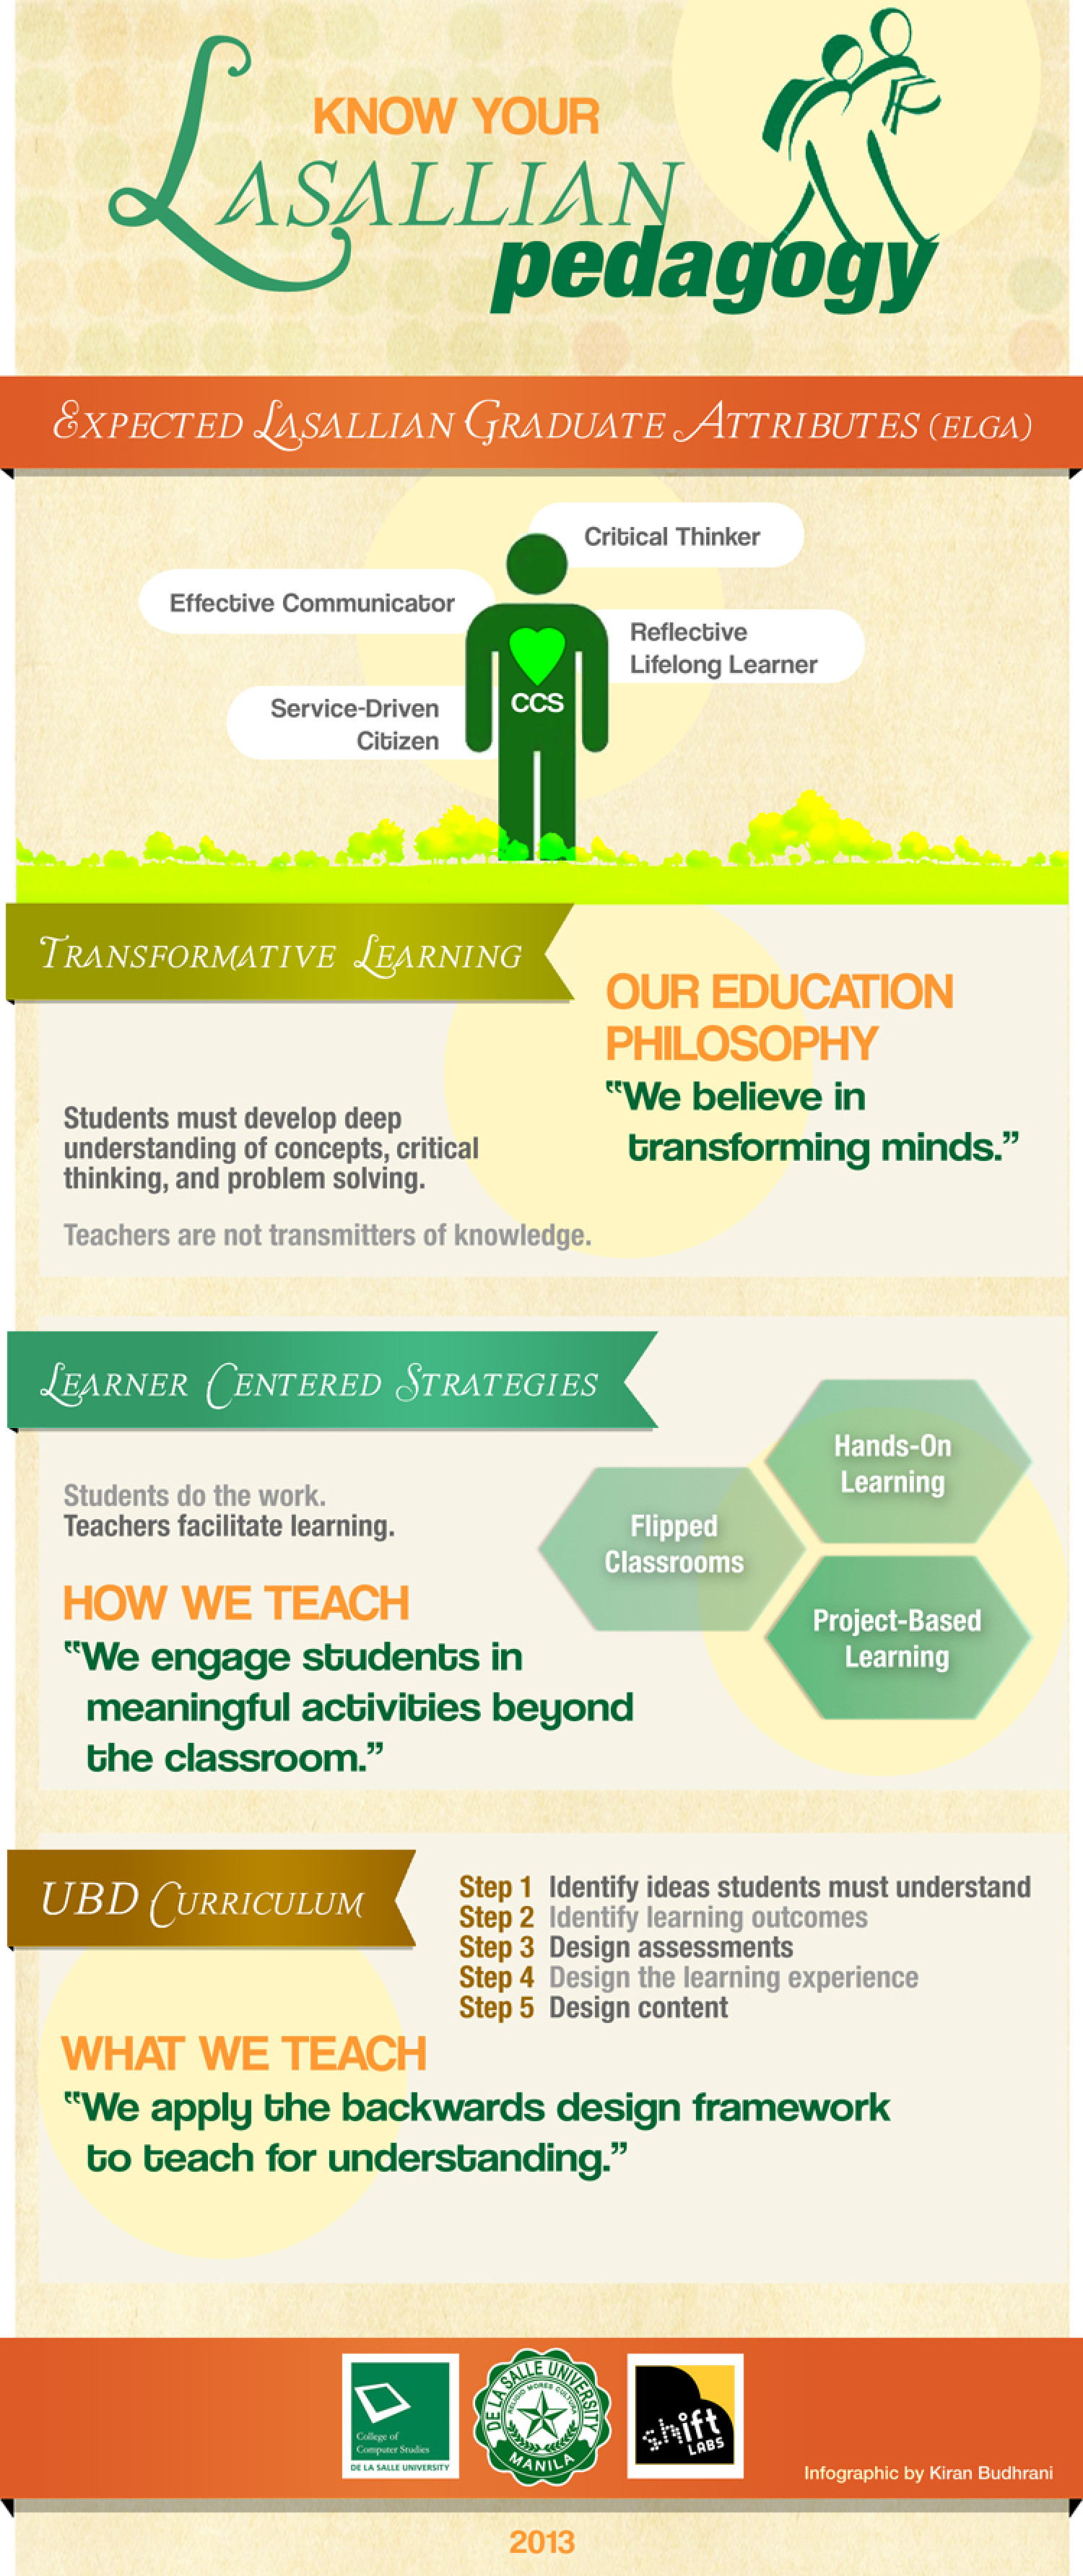 Know Your Lasallian Pedagogy Infographic